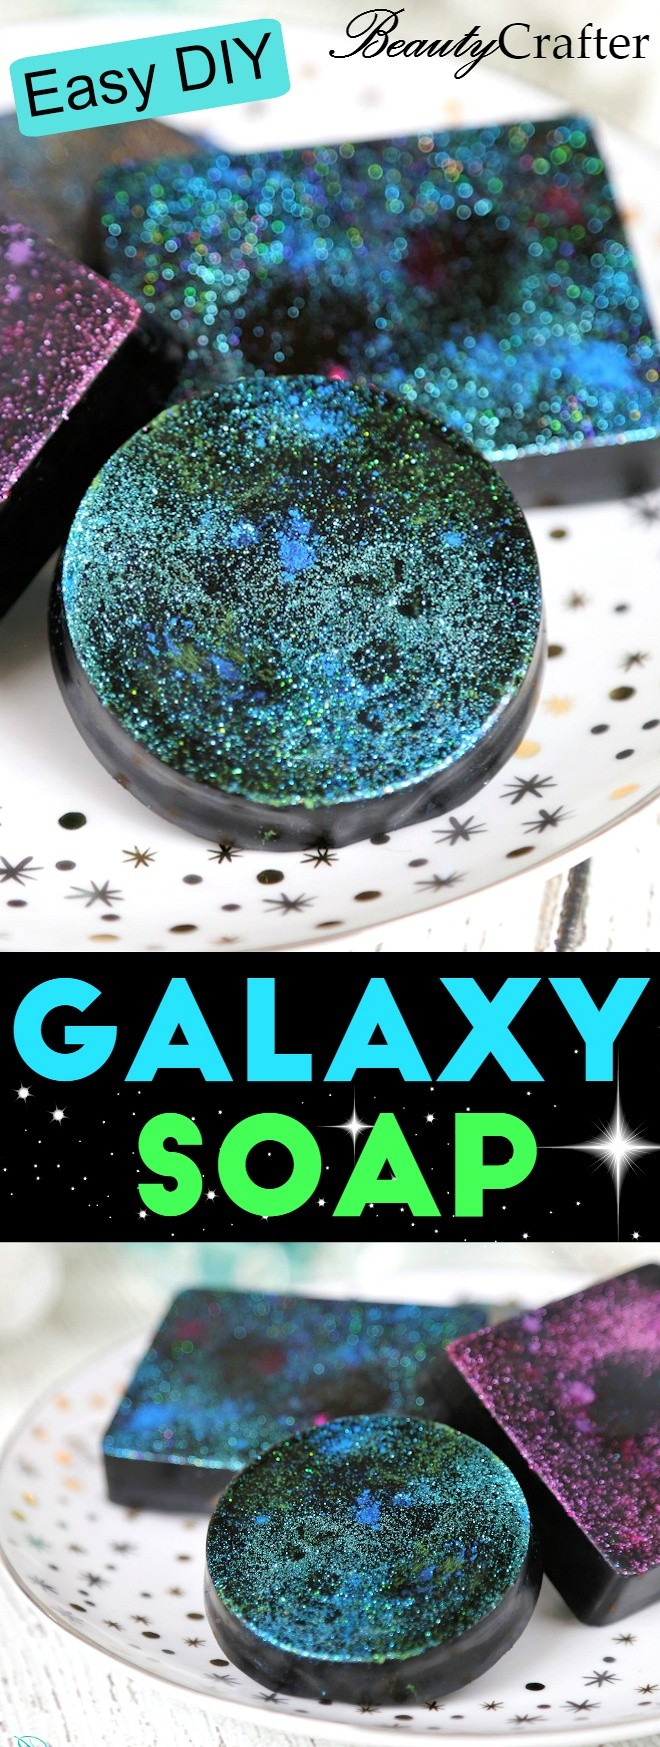 Activated Charcoal Soap Recipe plus easy directions to make it DIY Galaxy Soap #soap #soapmaking #activatedcharcoal #charcoalsoap #blacksoap